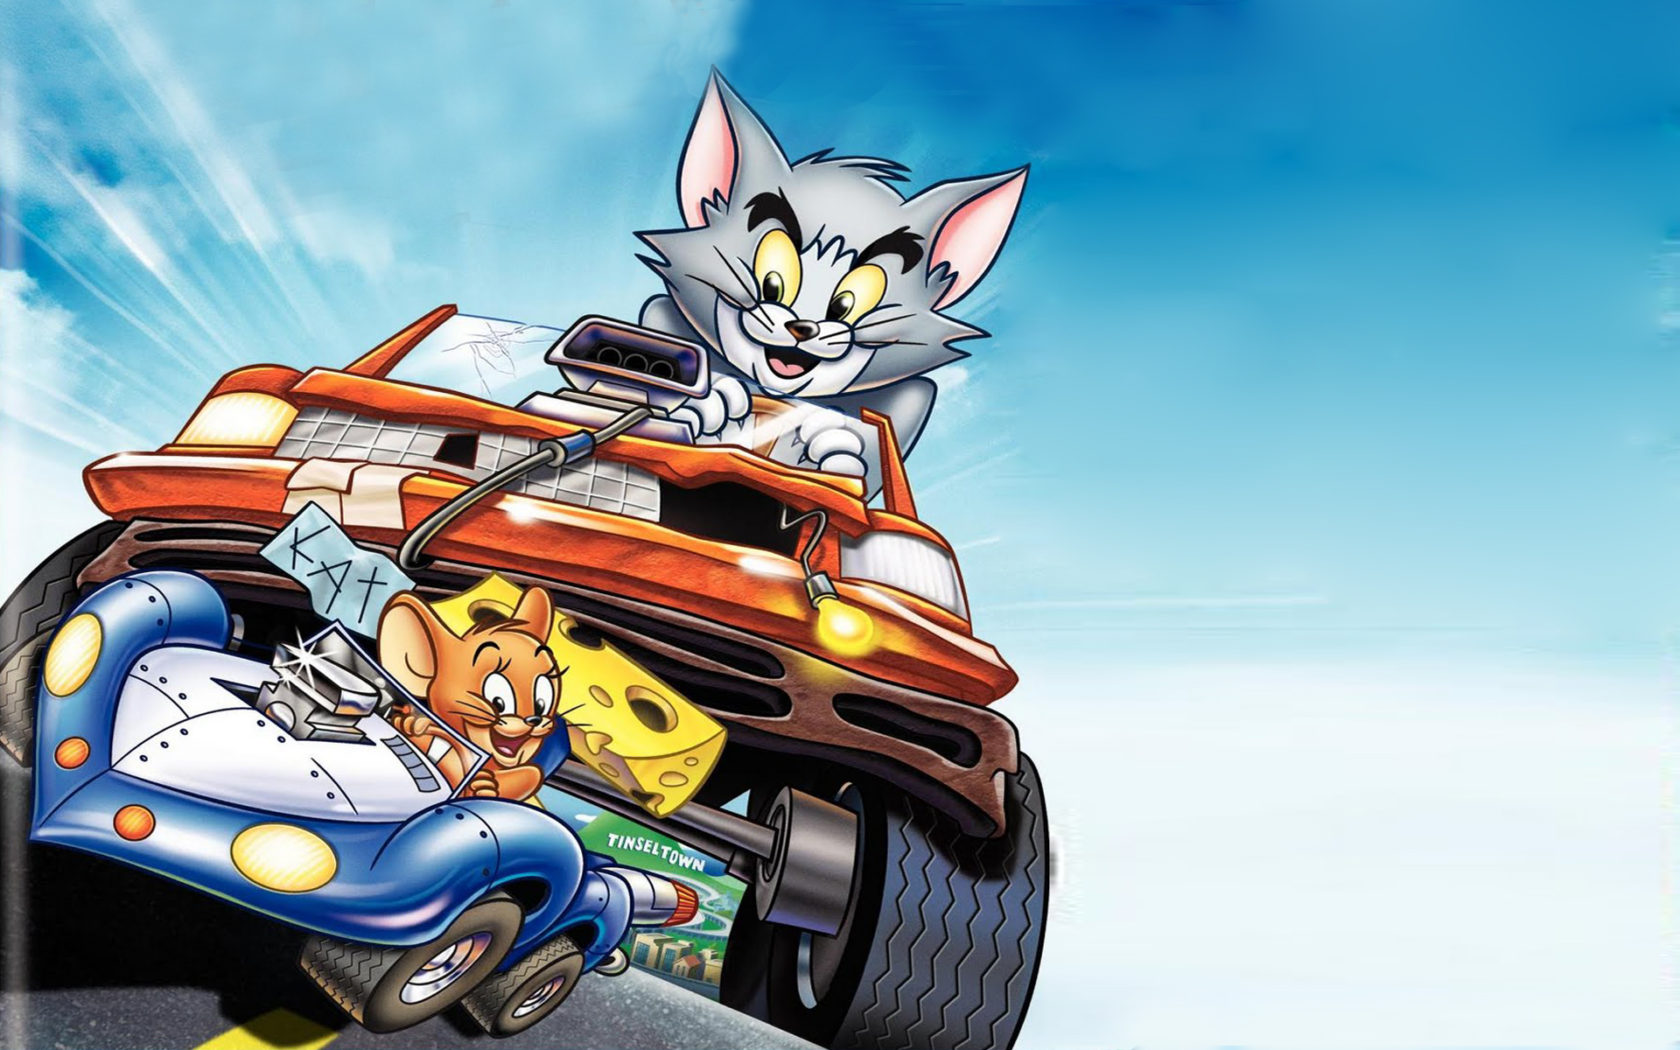 Small Size Car Wallpapers Tom And Jerry The Fast And The Furry Animated Action